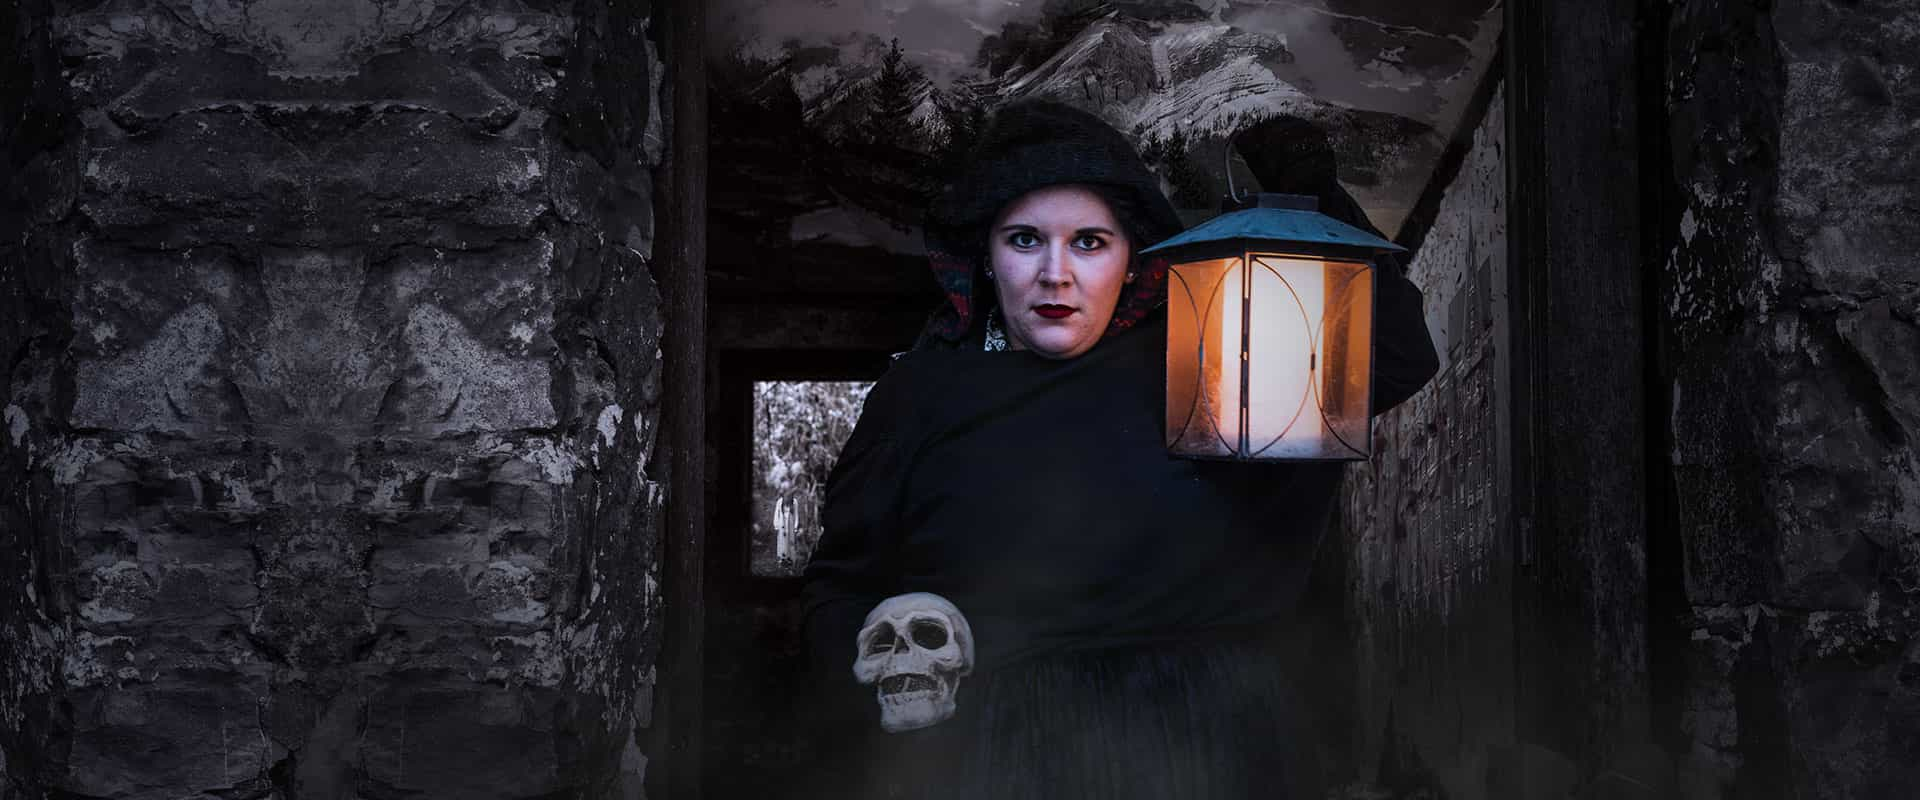 Take a Banff ghost tour led by an interpretive guide